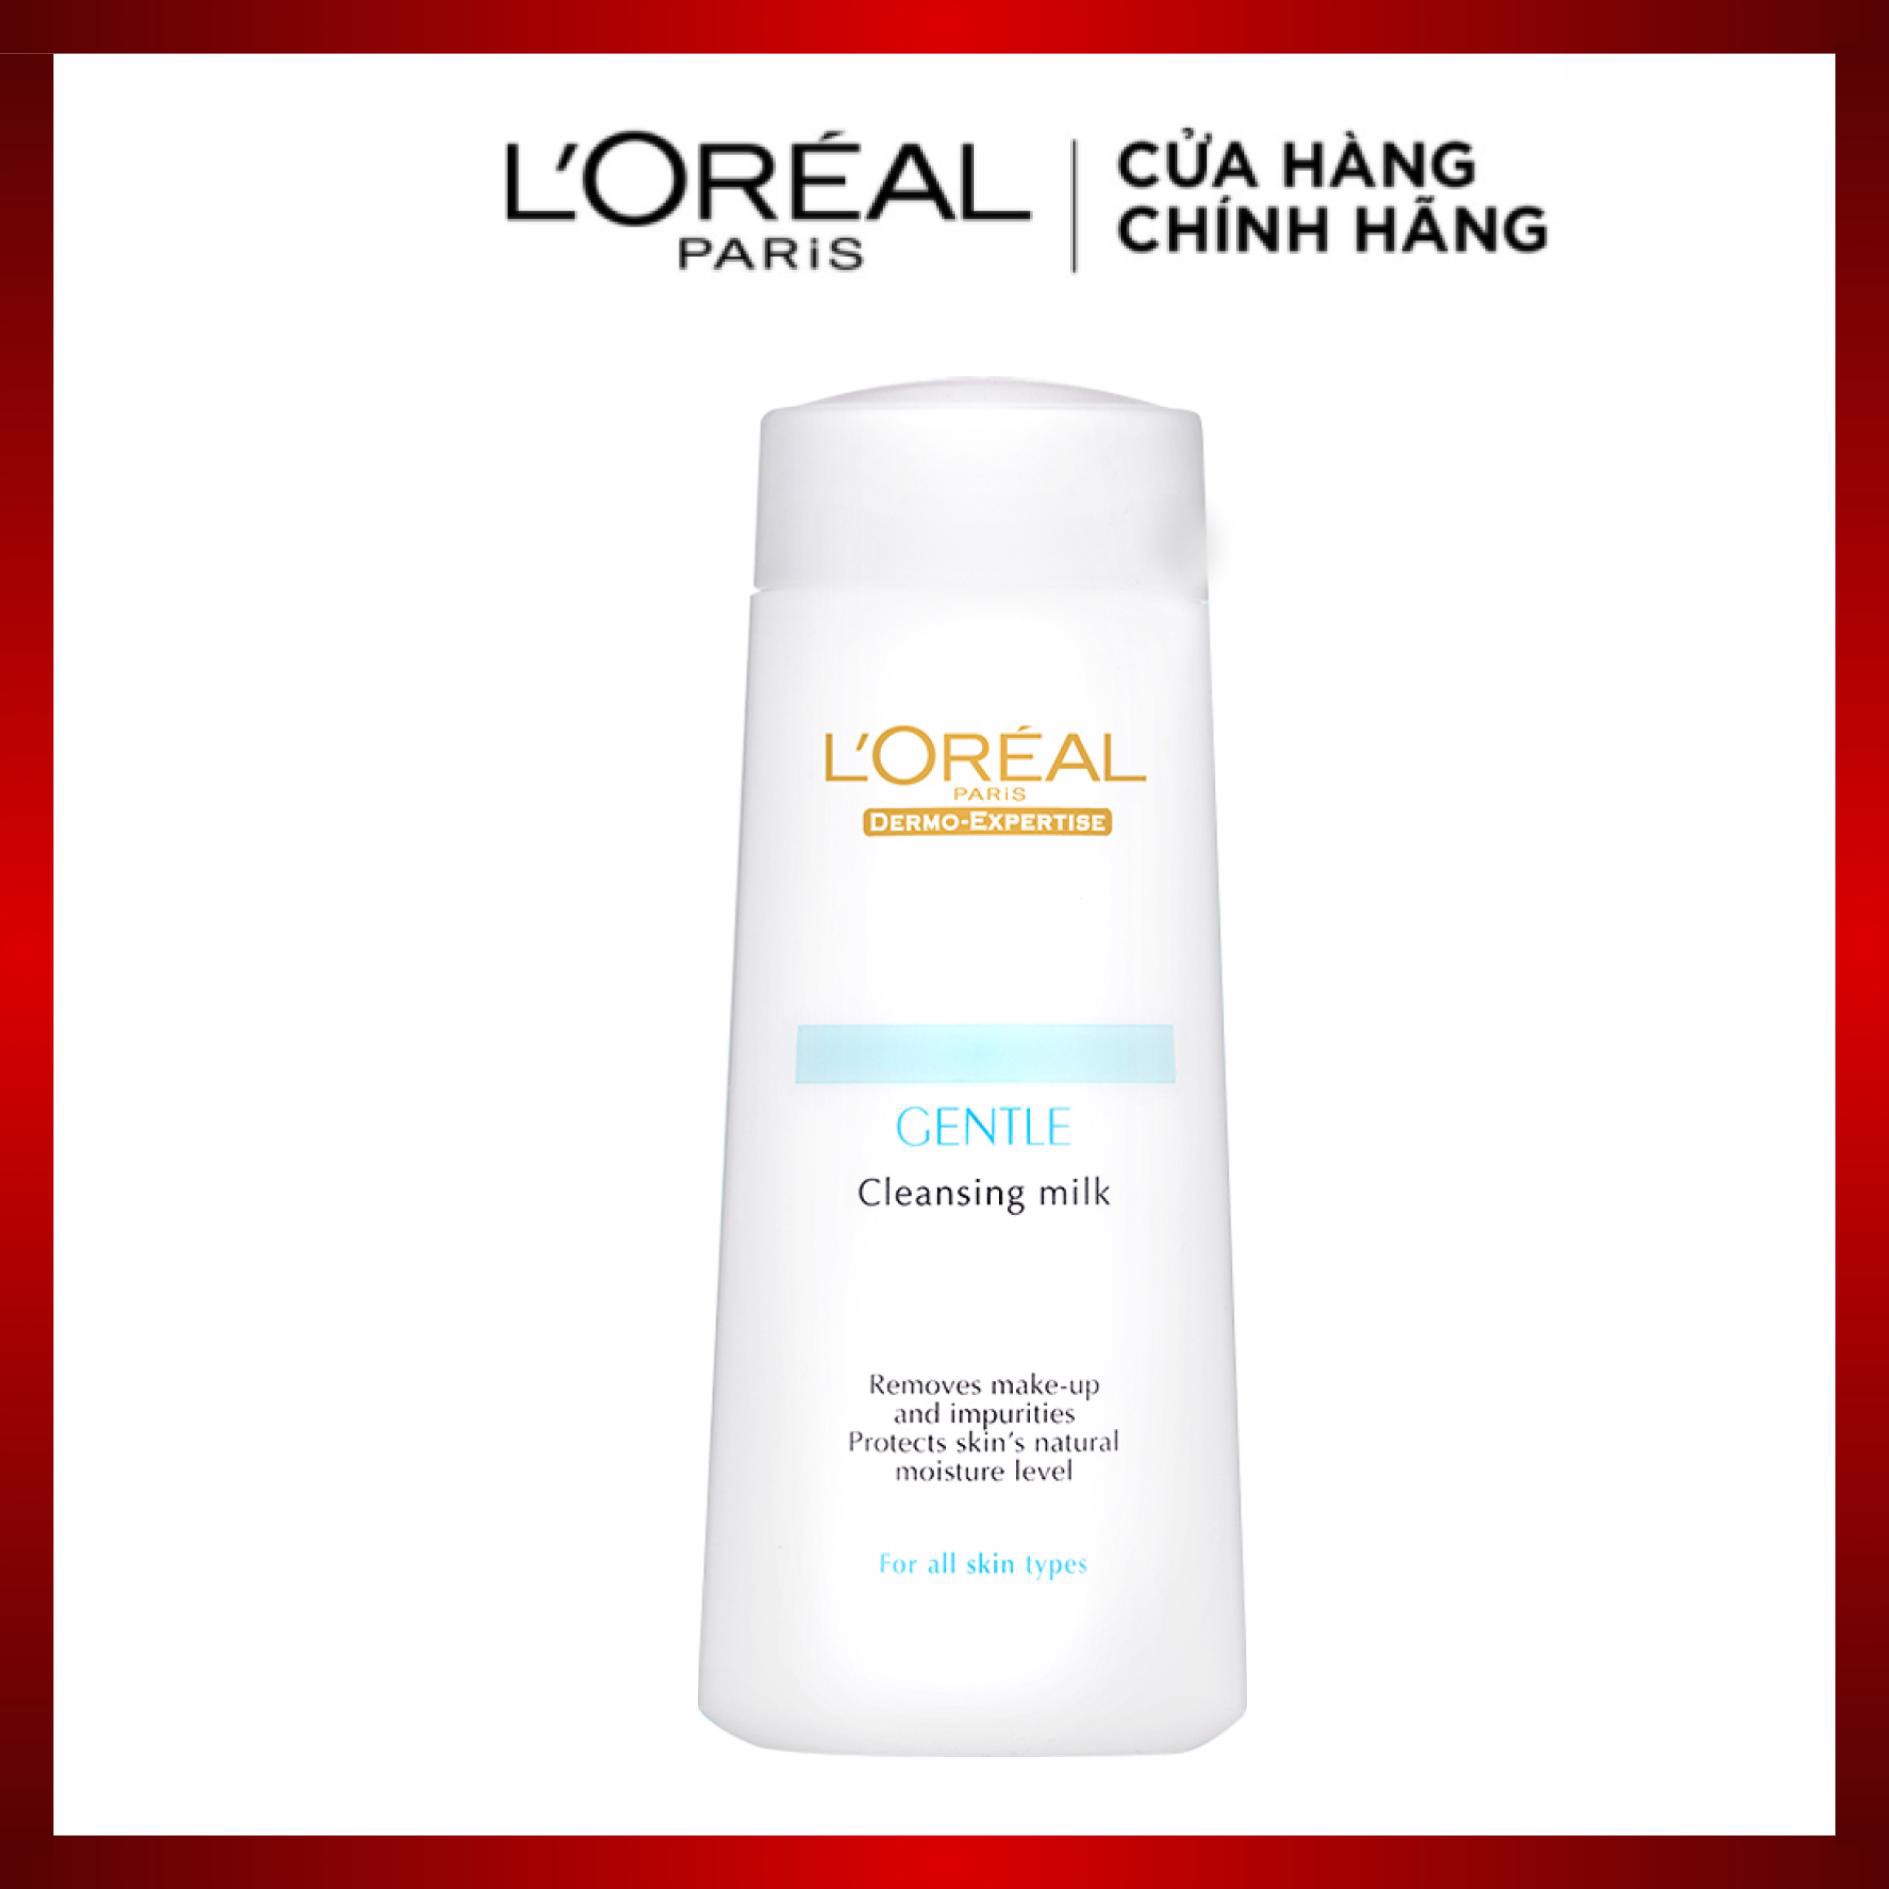 Sữa tẩy trang L'Oreal Paris Dermo Expertise Gentle Cleansing Milk 200ml